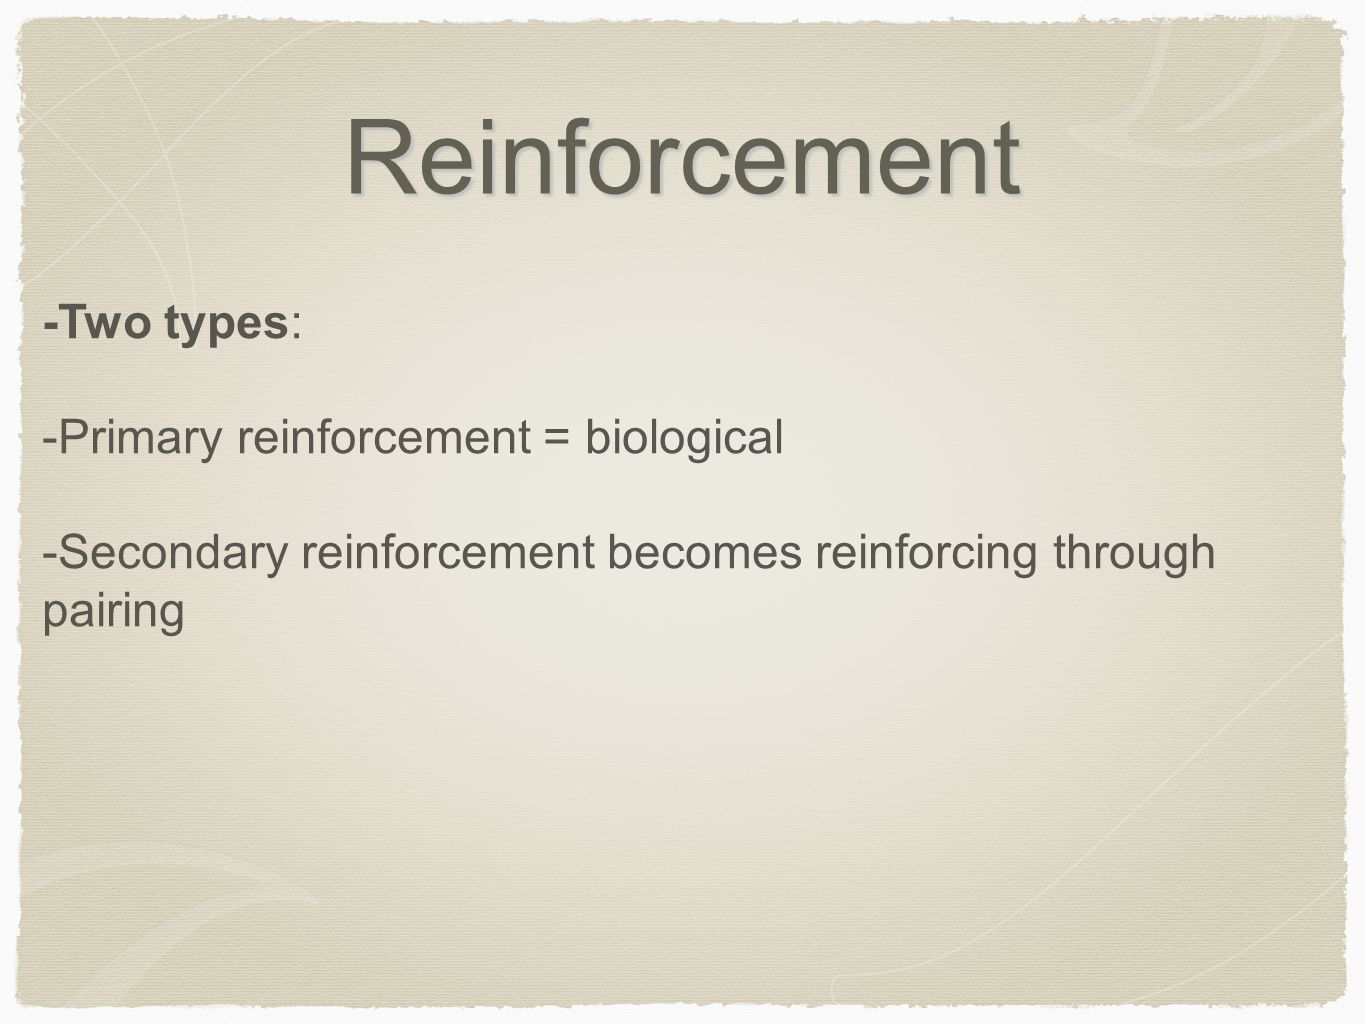 Reinforcement -Two types: -Primary reinforcement = biological -Secondary reinforcement becomes reinforcing through pairing